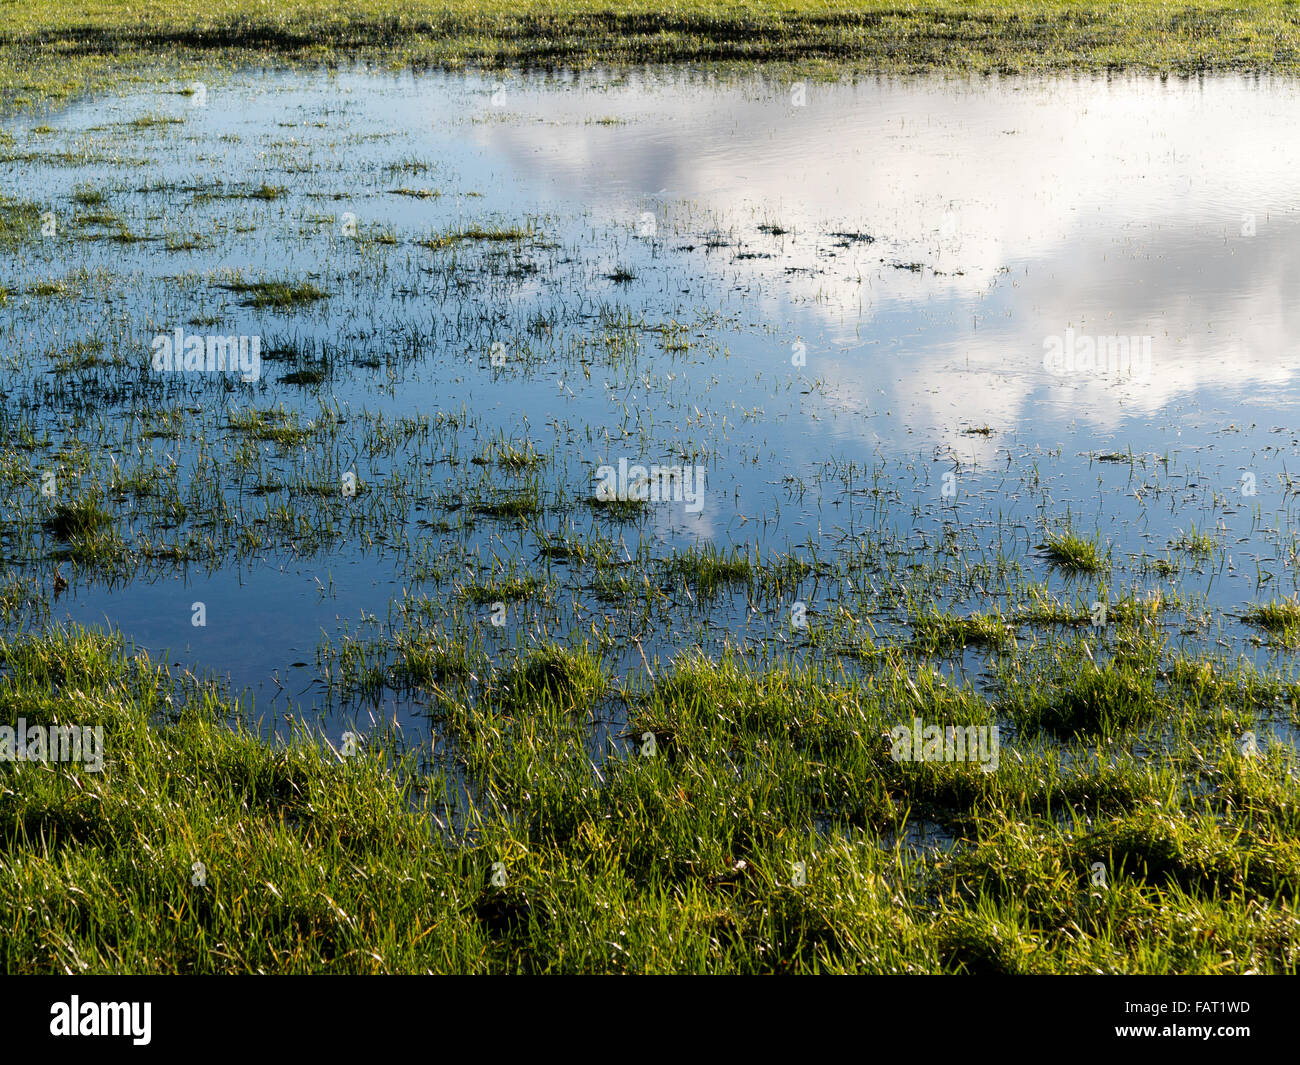 A small area of flooded field with sky and cloud reflected on the surface - Stock Image